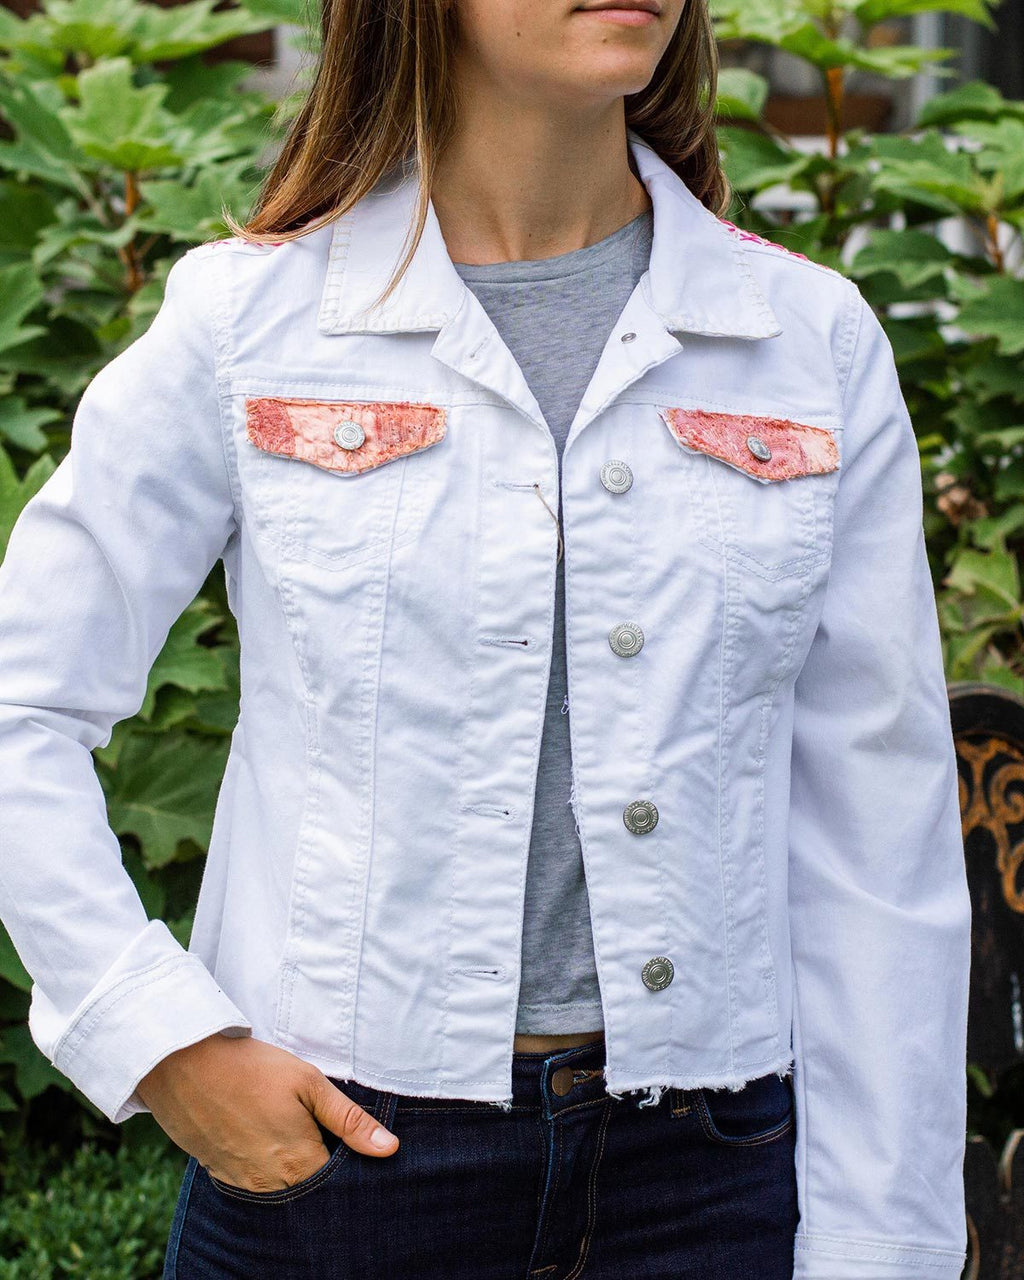 Holly OOAK White Oversized Denim Jacket - Medium